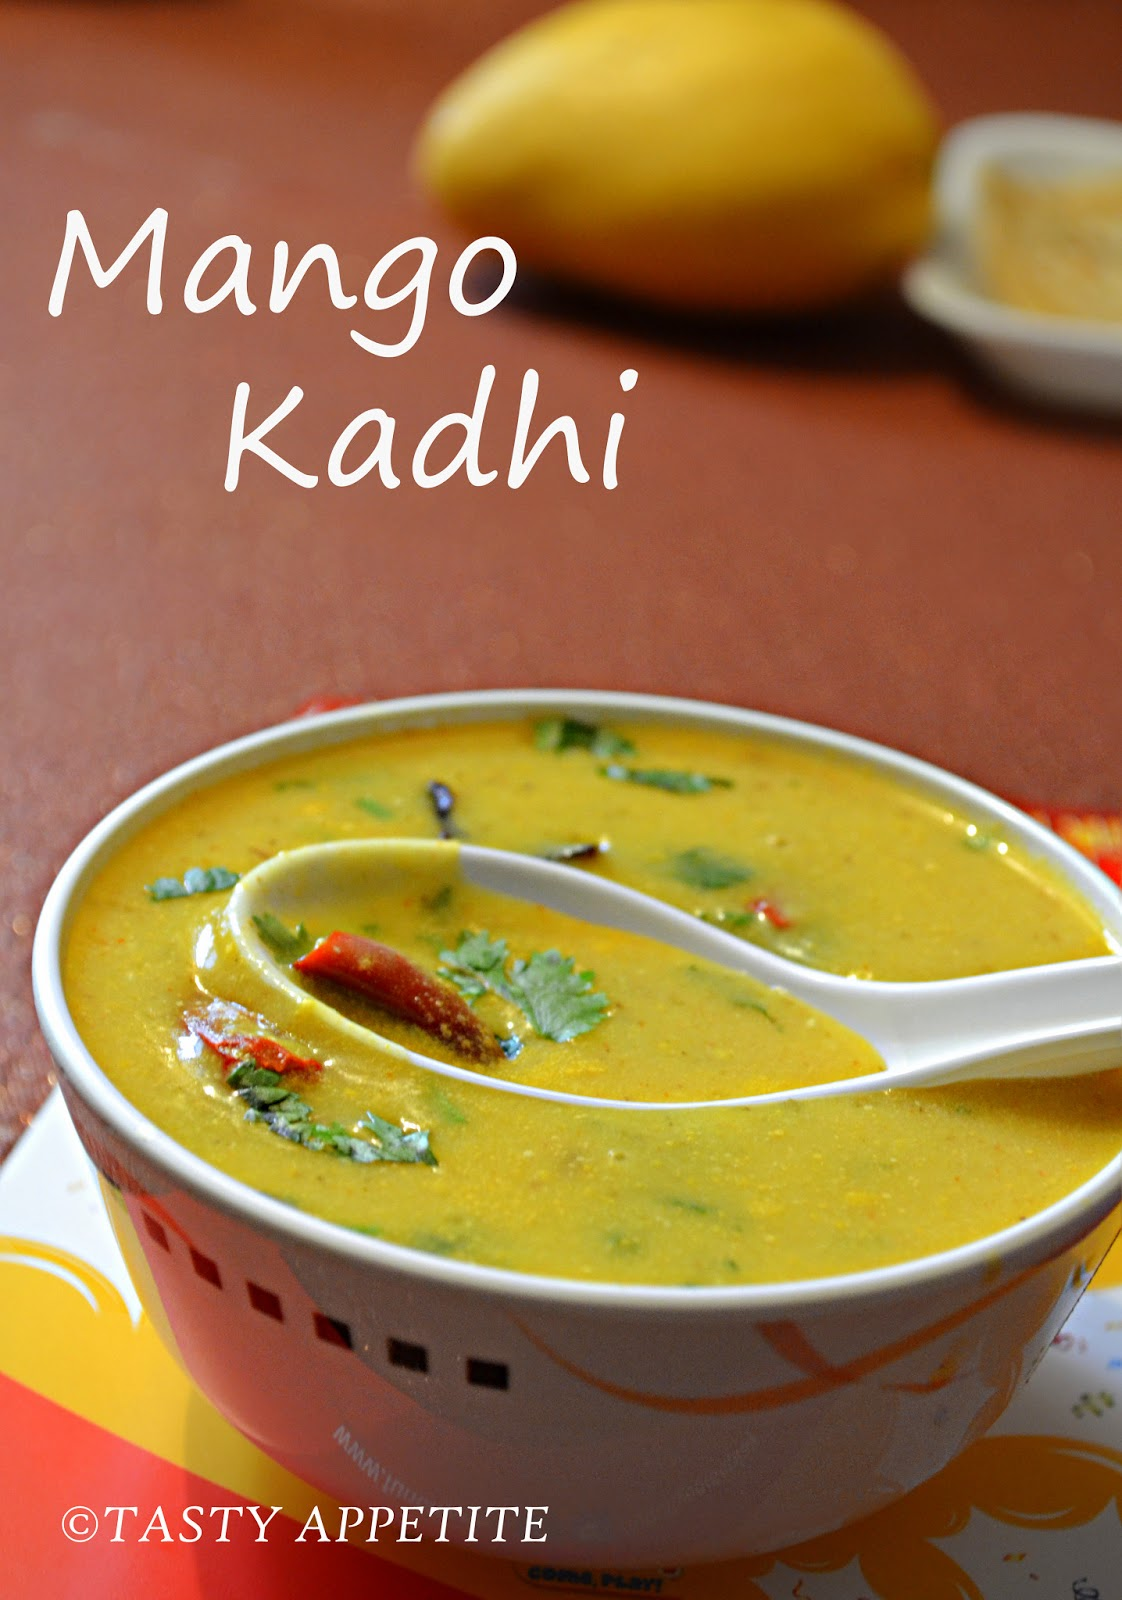 how to eat a mango indian style